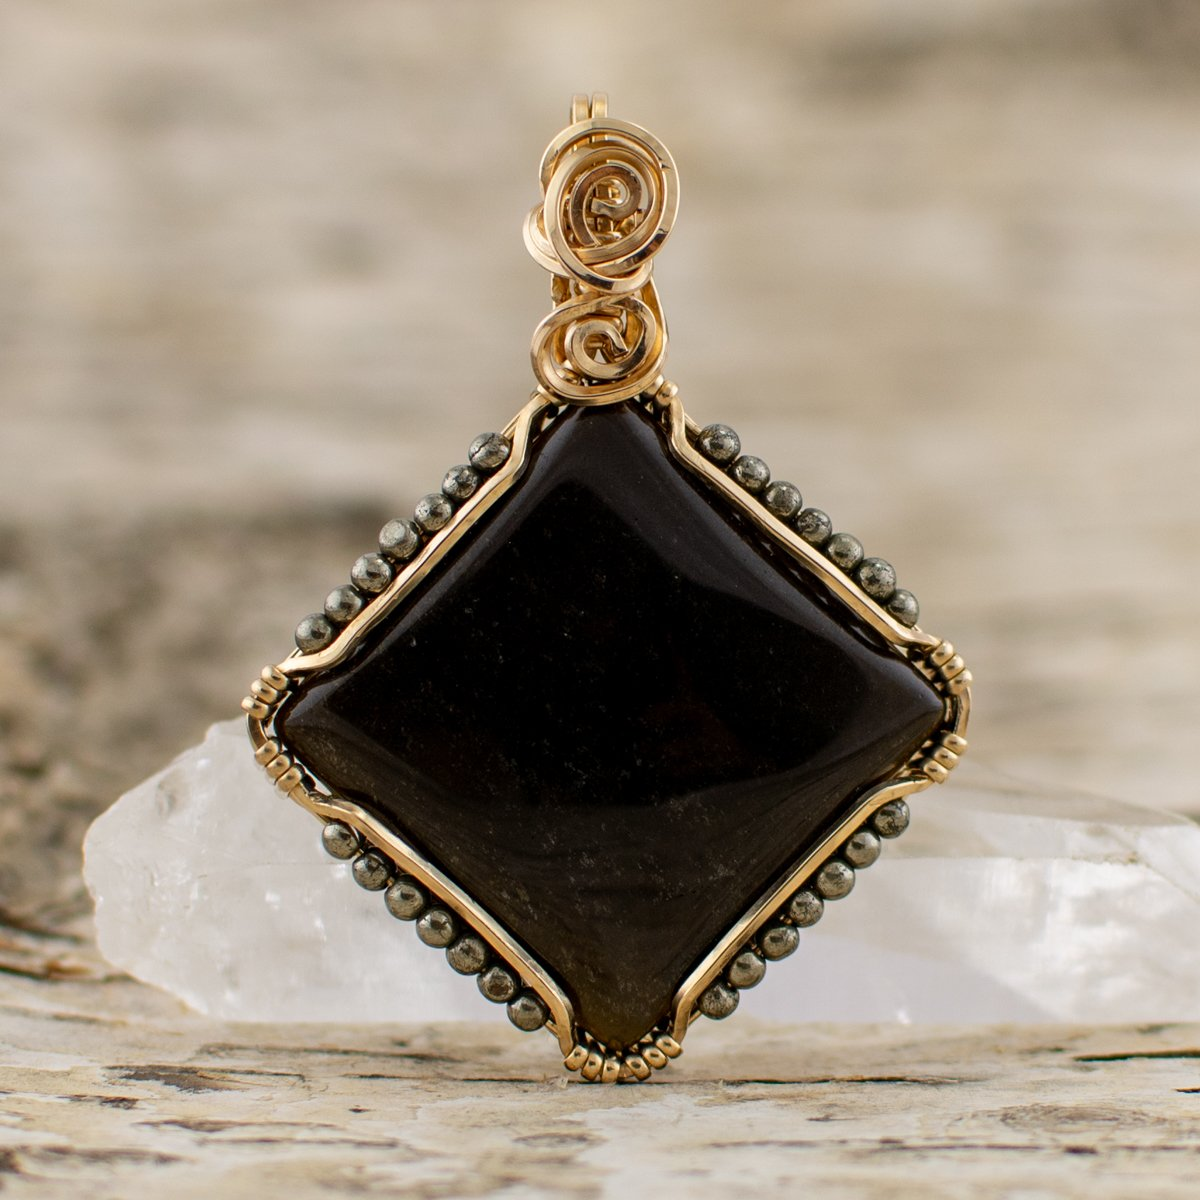 The Shield Golden Sheen Obsidian Pendant black and sparkly